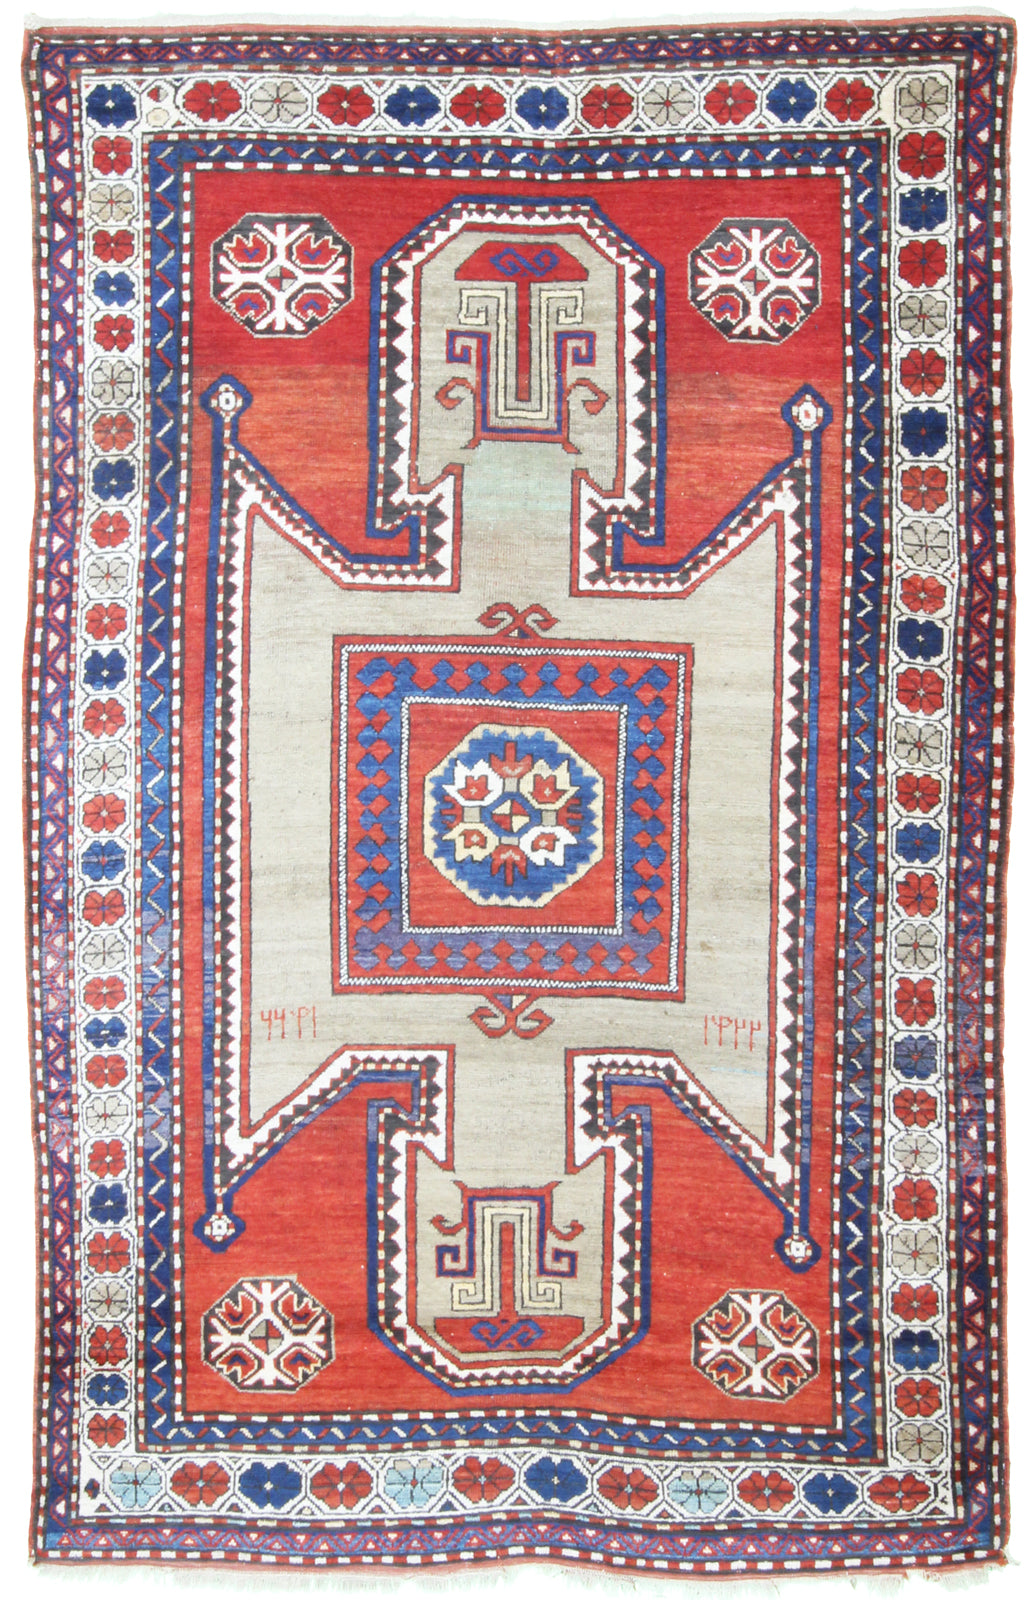 Sewan Kazak Antique